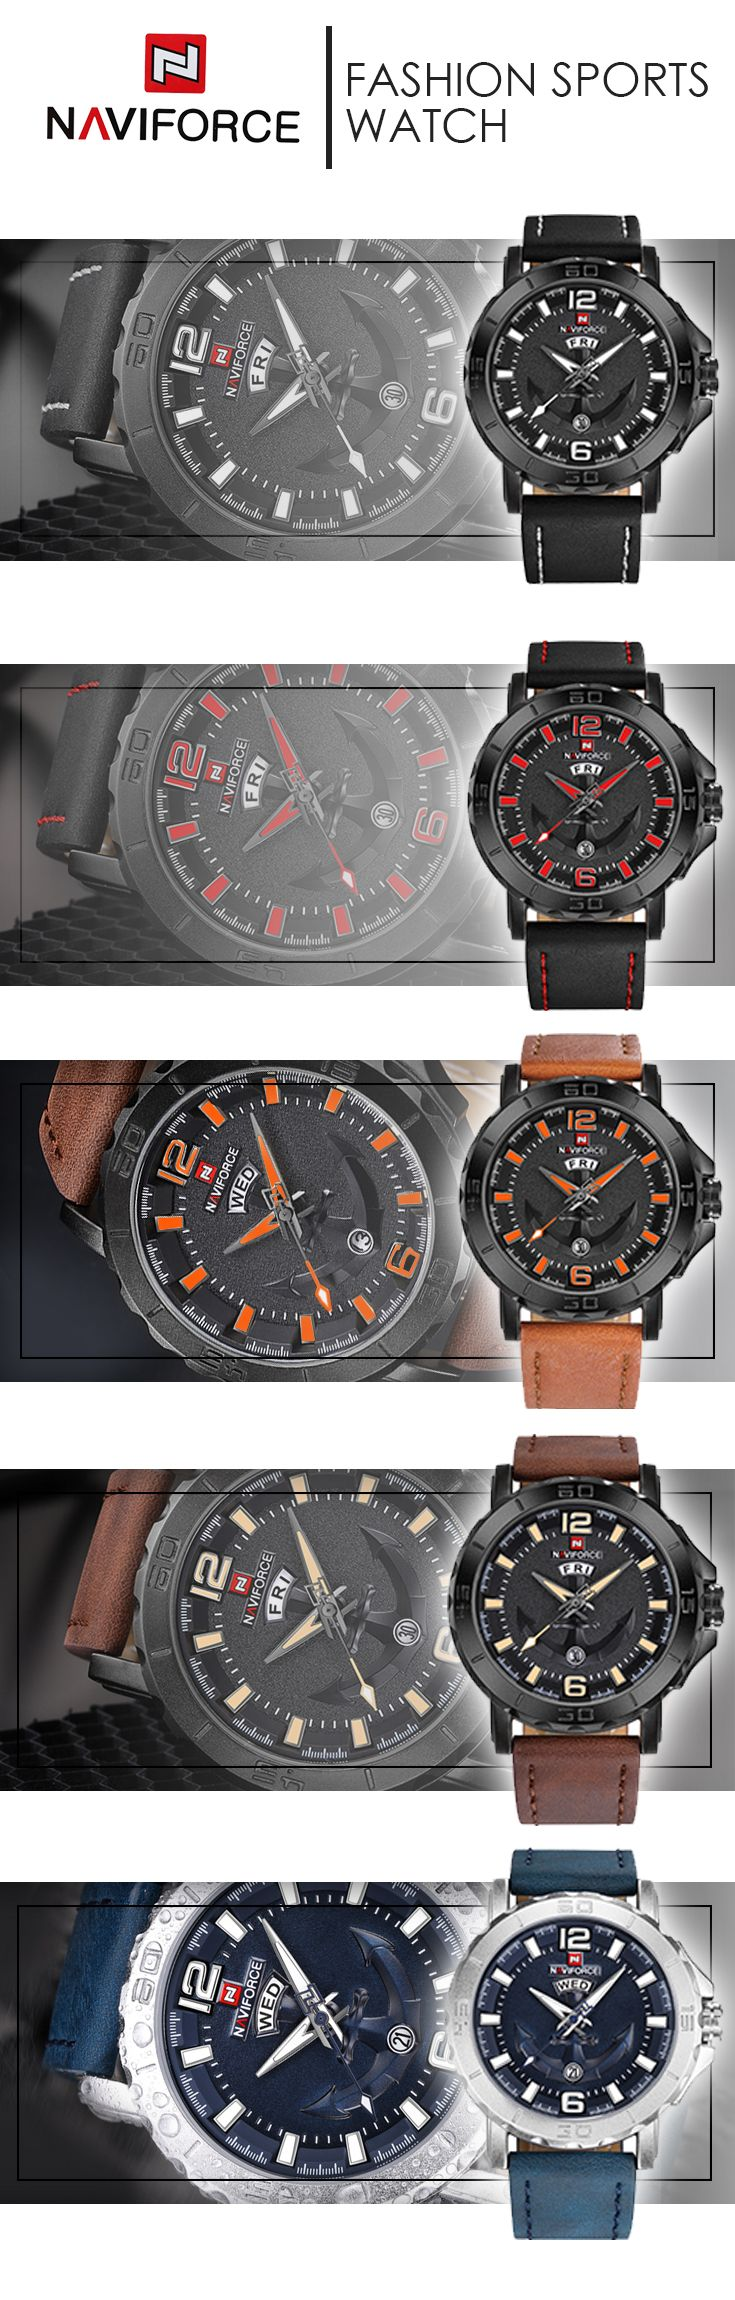 Men's Leather Strap 2018 military watches - Naviforce sport luxury watch - Mens style fashion brand affordable accessories #menswatches #menaccessories